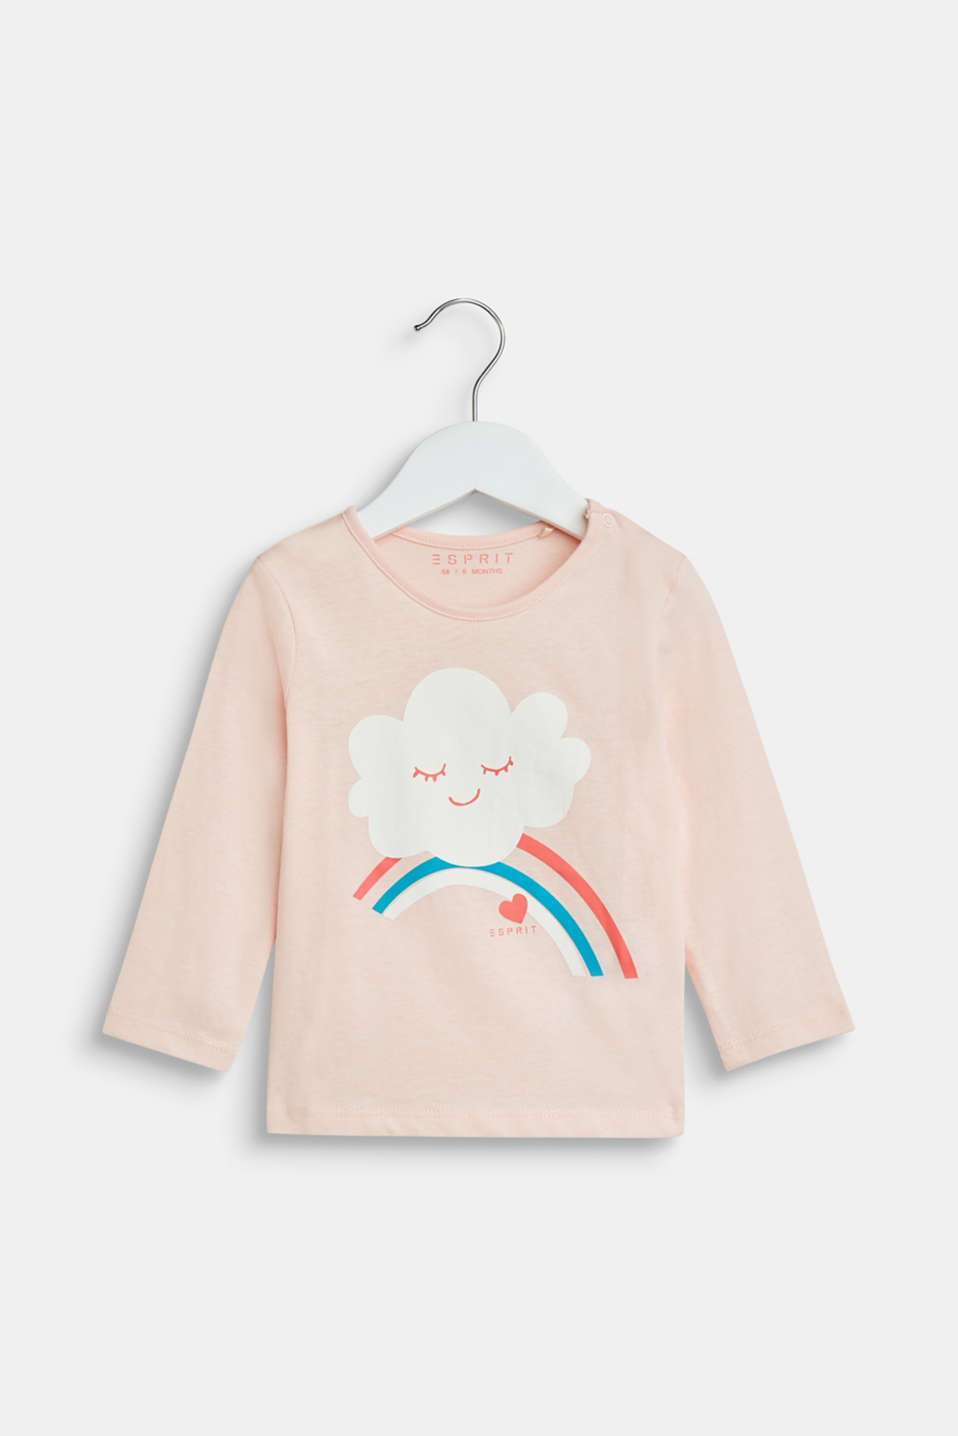 Esprit - Long sleeve top with a cloud print, 100% cotton